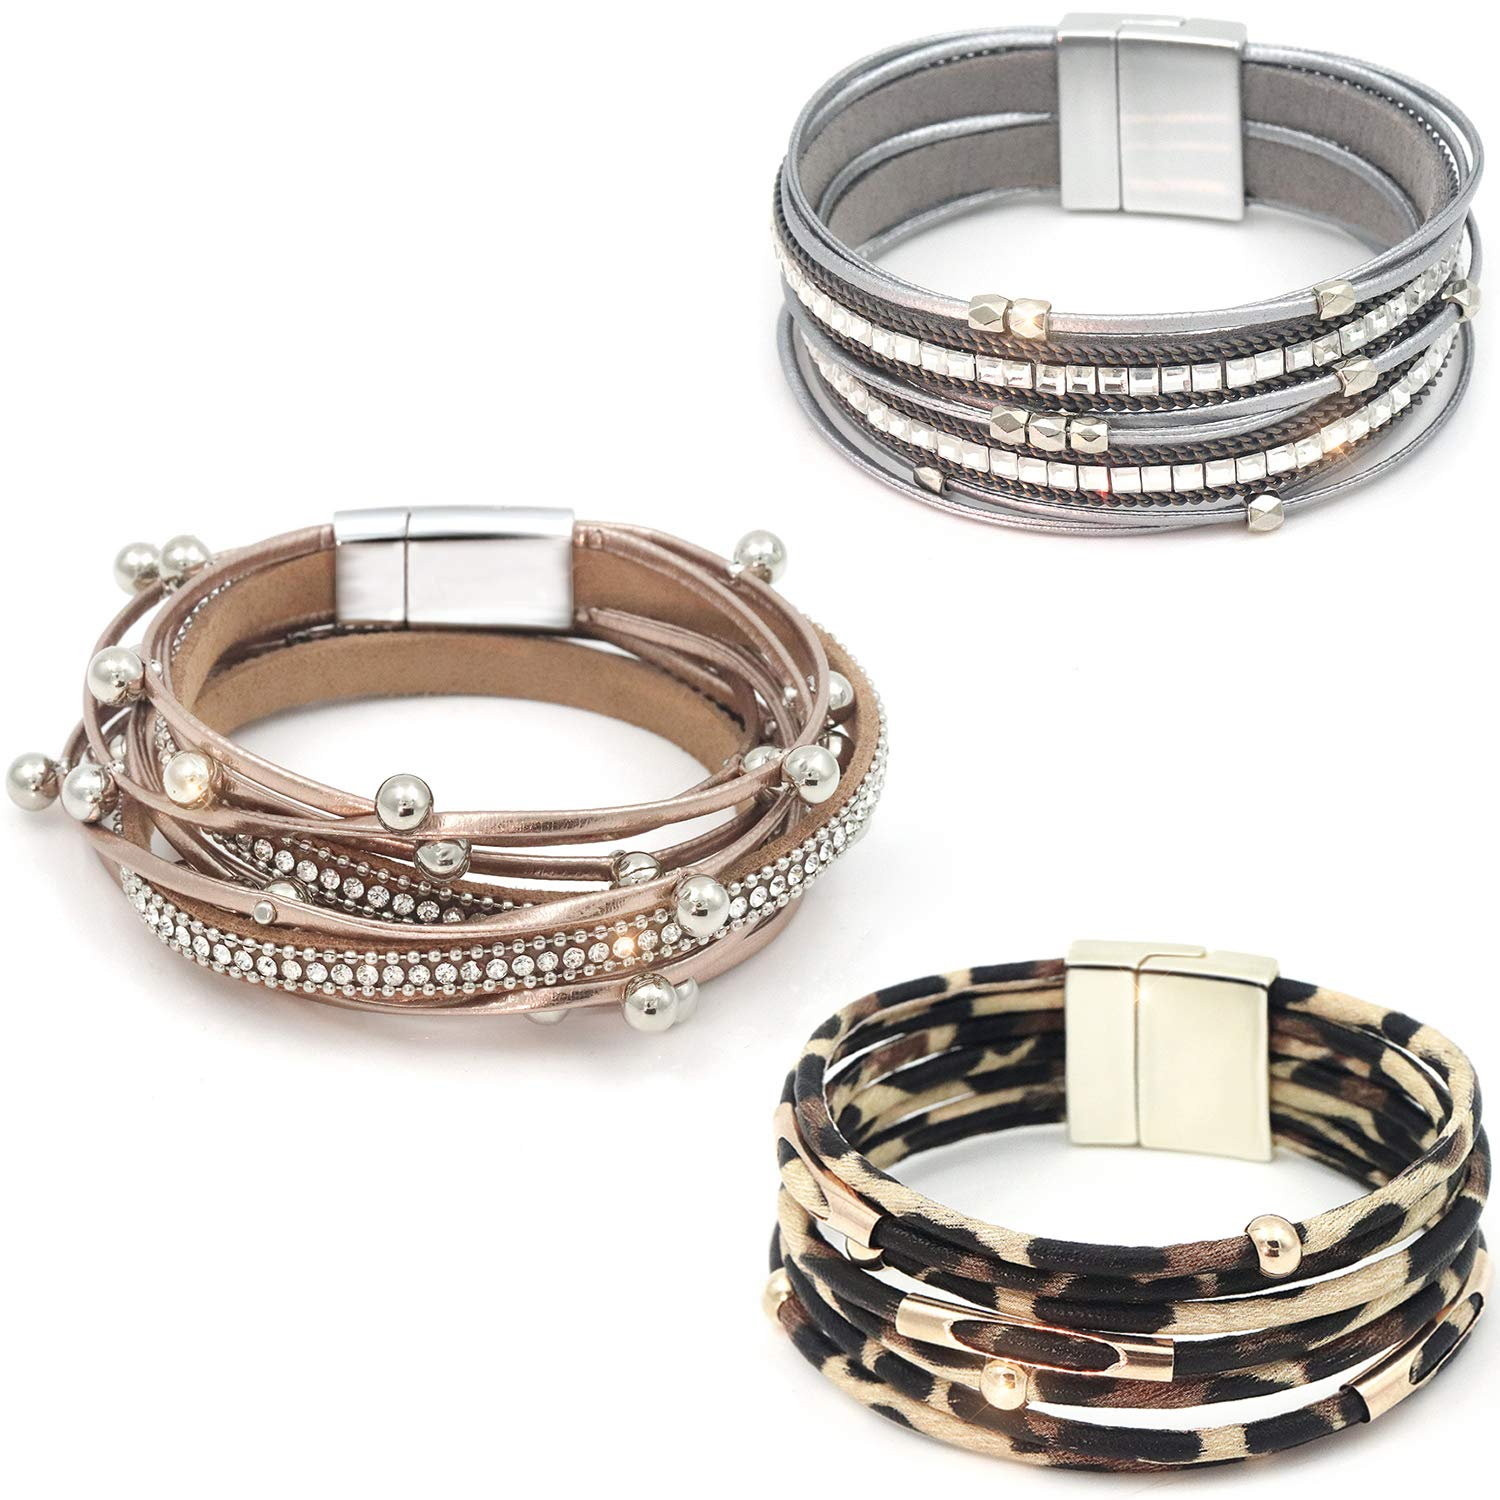 Suyi 3 Pieces Multilayer Leather Bracelet Beads Wrap Bracelet Wrist Cuff Bangles with Magnetic Buckle for Women 3Pcs by Suyi